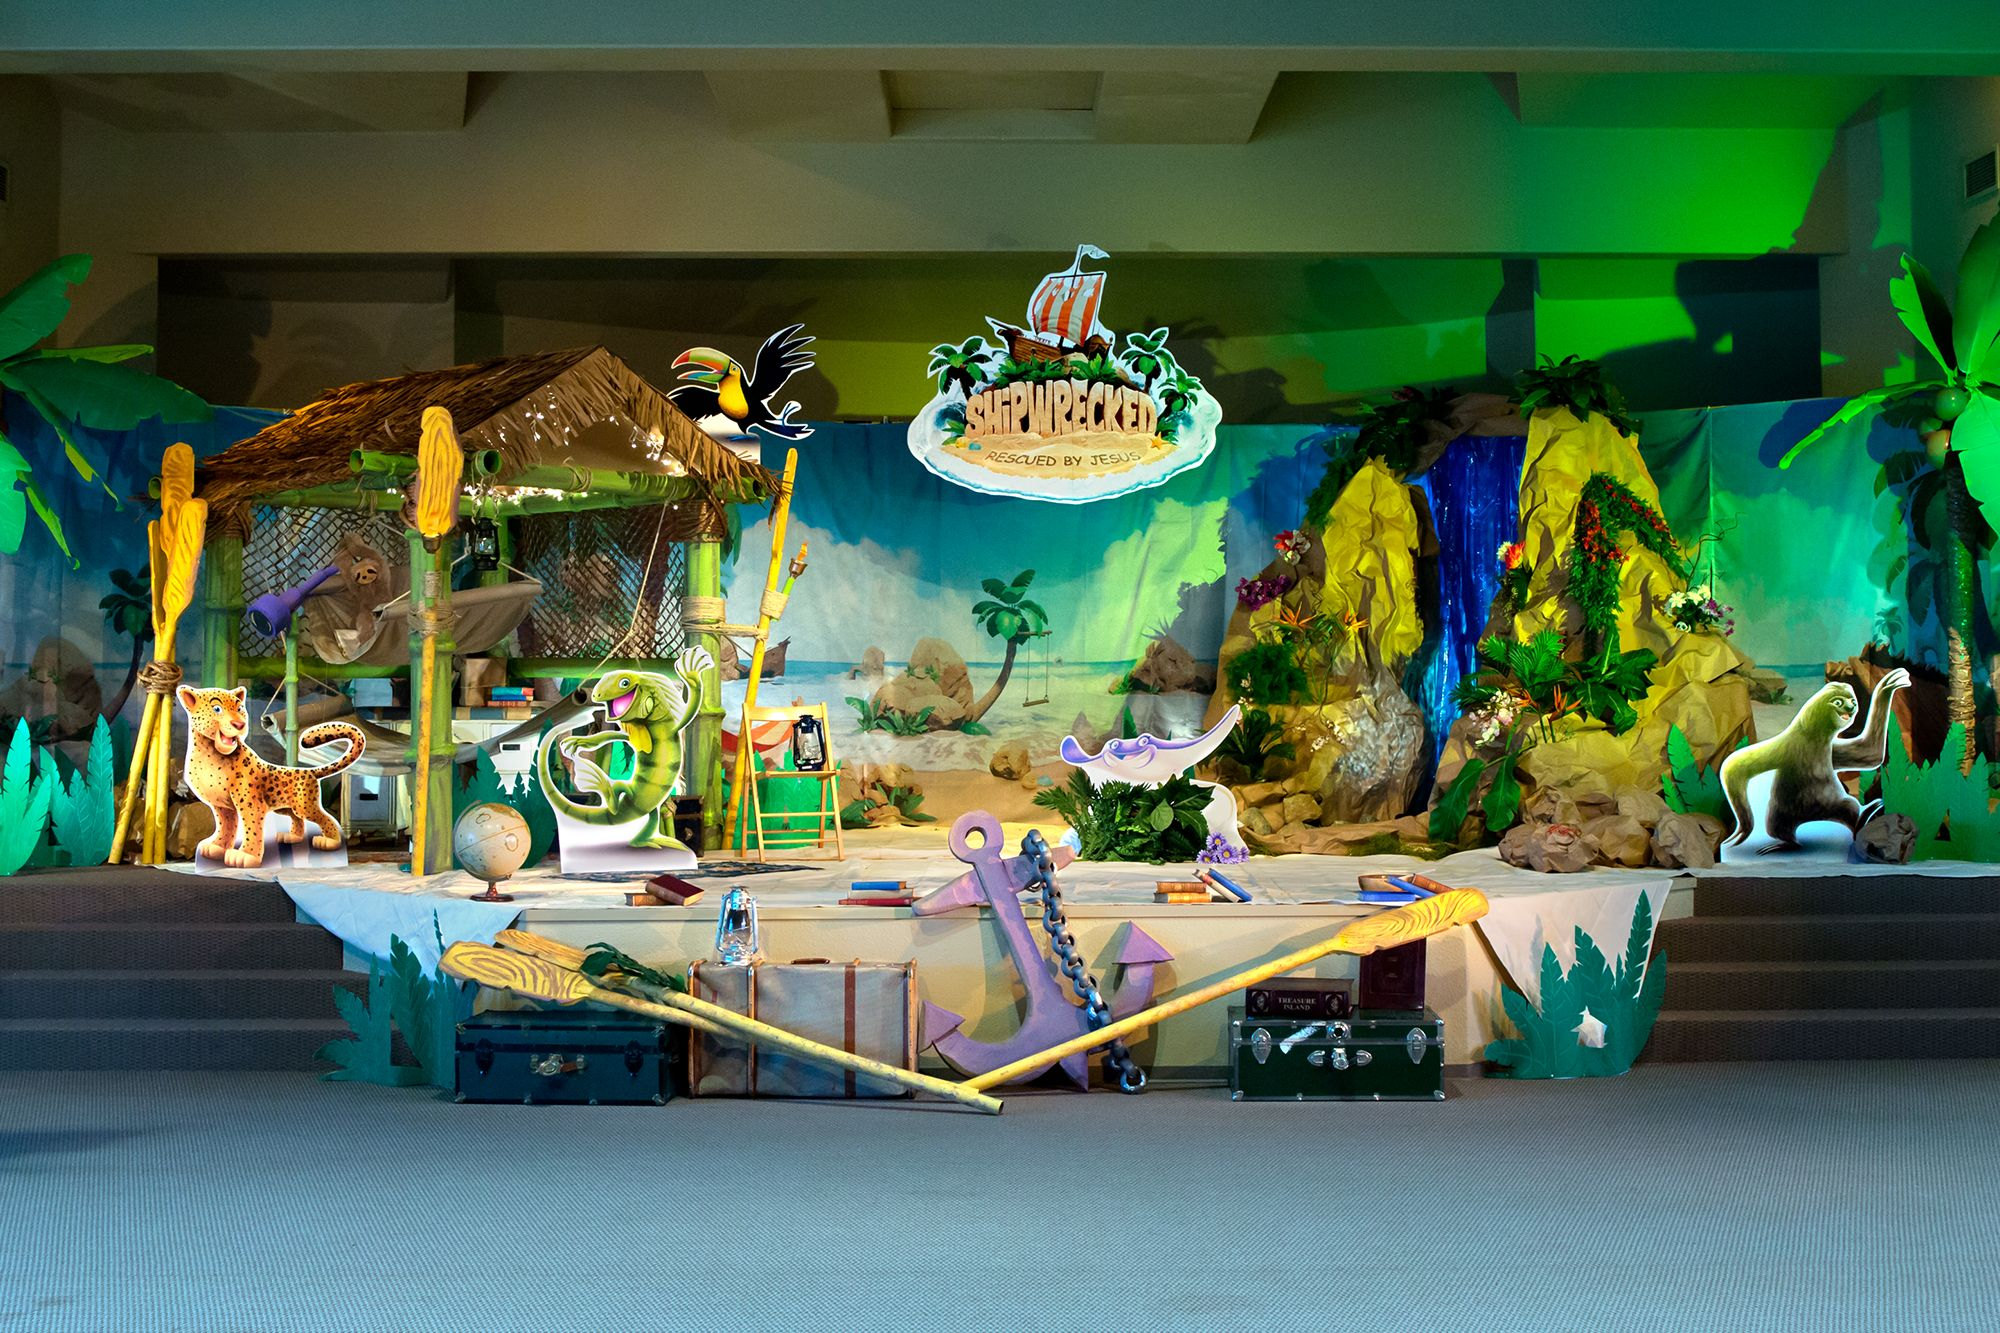 Shipwrecked Free Resources   VBS 2018   Pinterest   Free ...